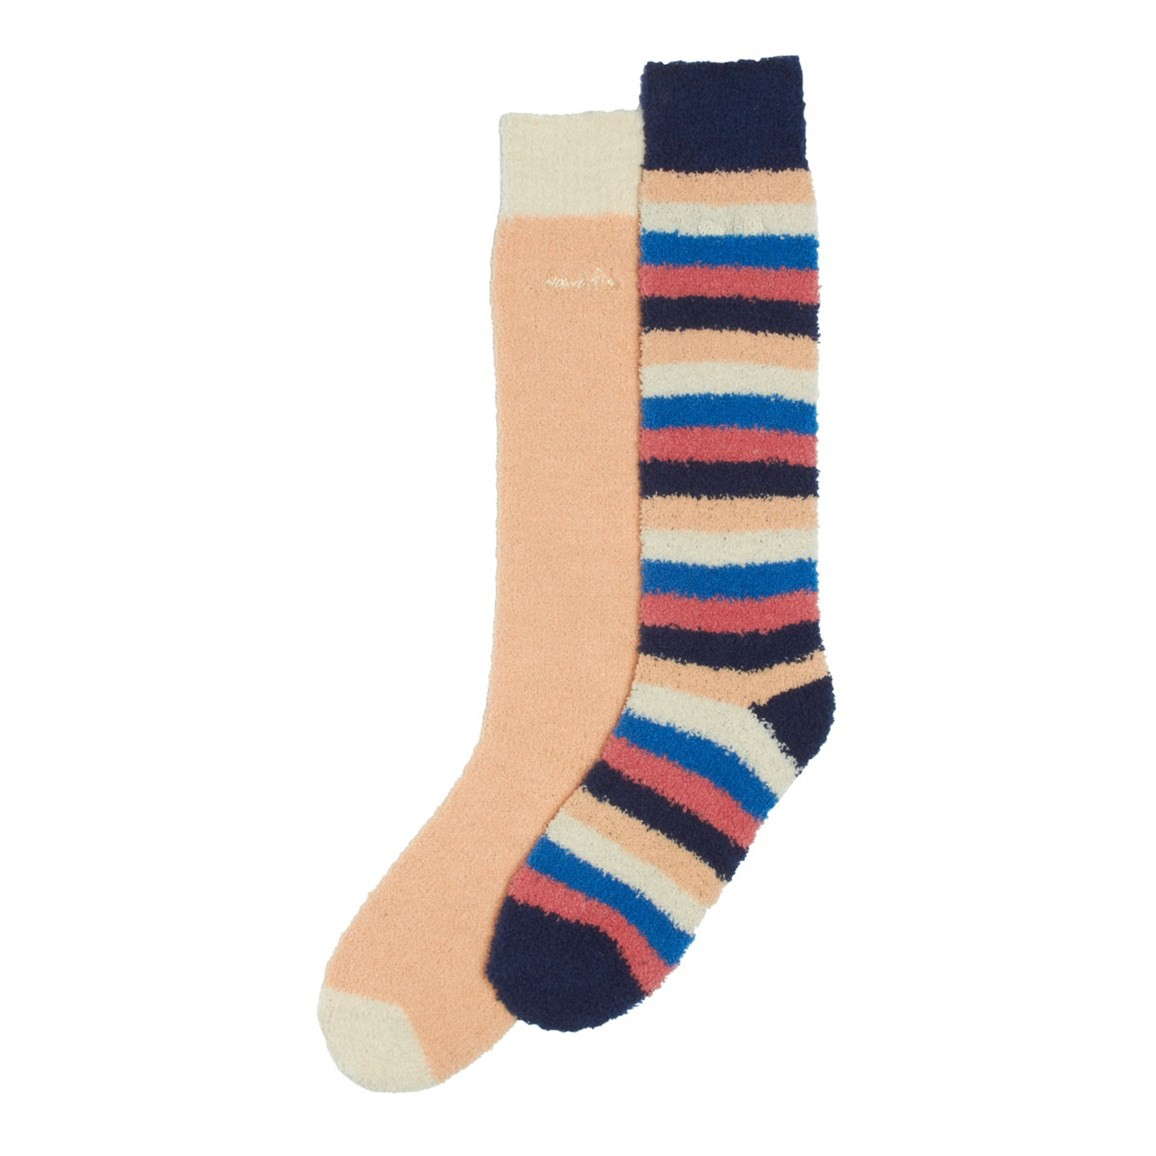 Weird Fish Park Fluffy Socks Pack of 2 Pairs Apricot